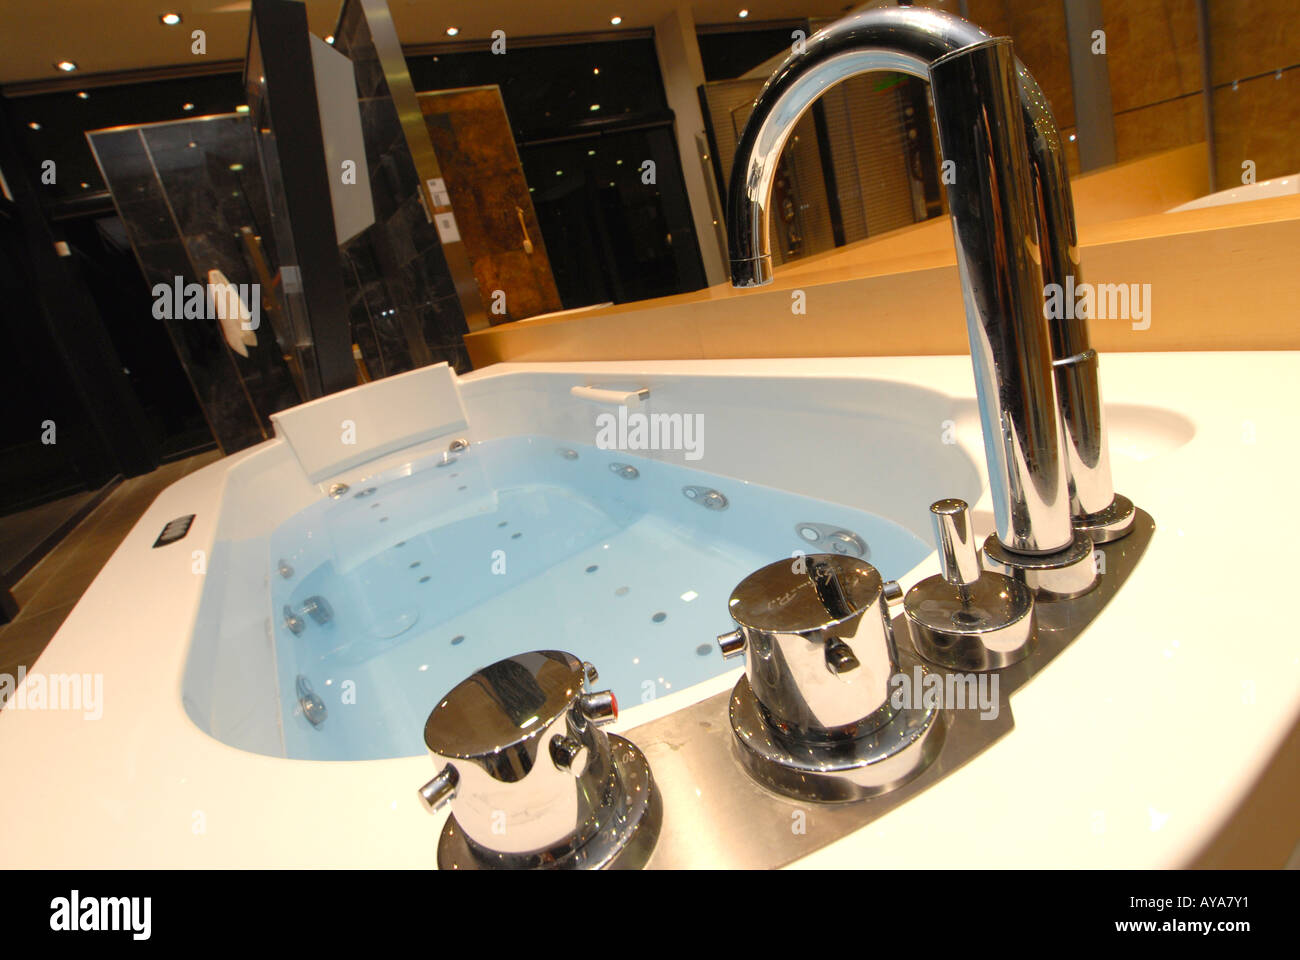 Modern jacuzzi design modern kitchens bathrooms living rooms and